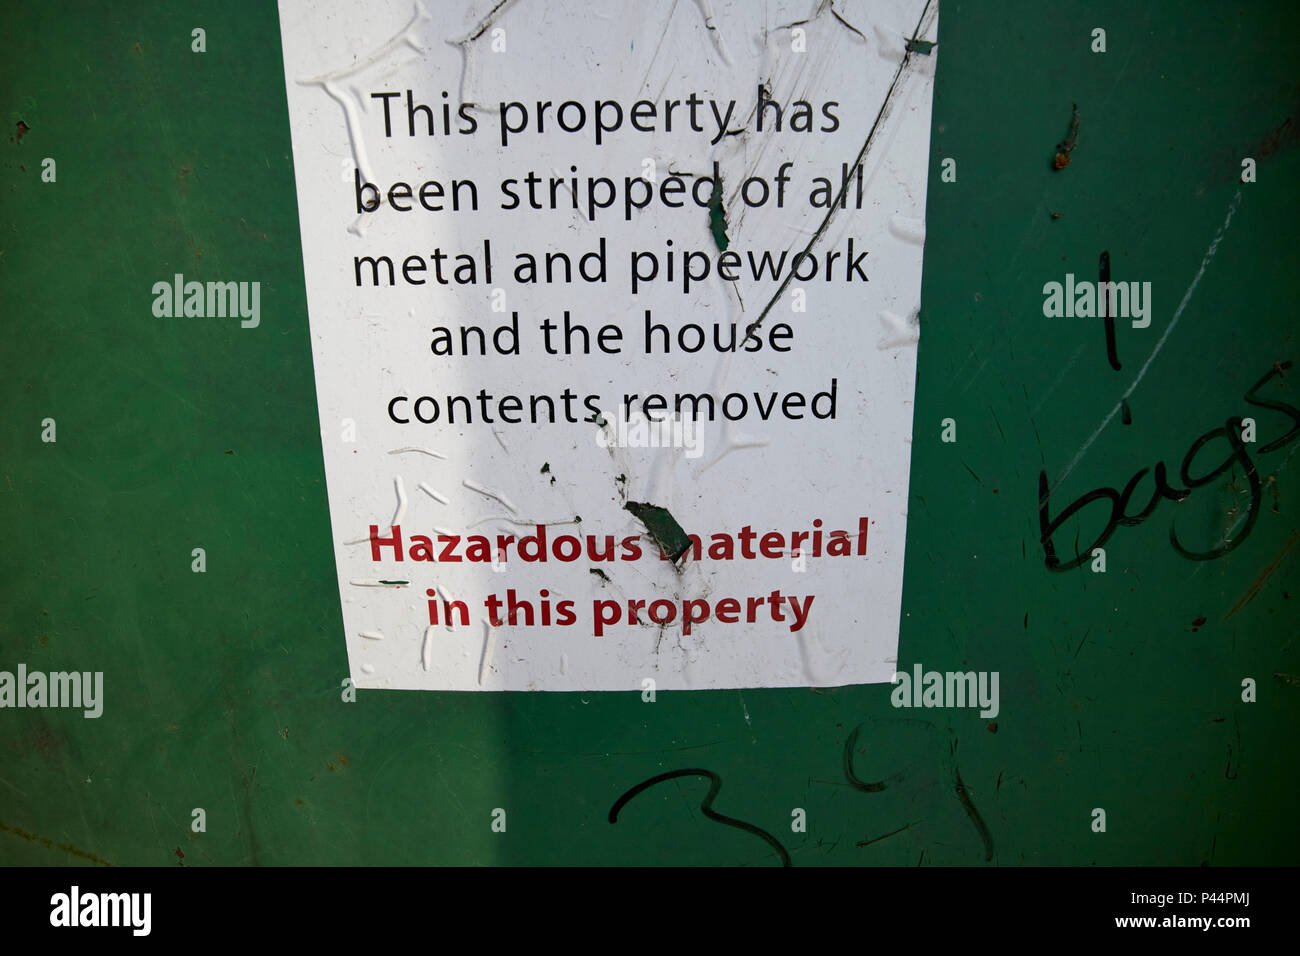 Notice on derelict house saying all contents metal and pipework have been removed and hazardous material Carlisle Cumbria England UK - Stock Image